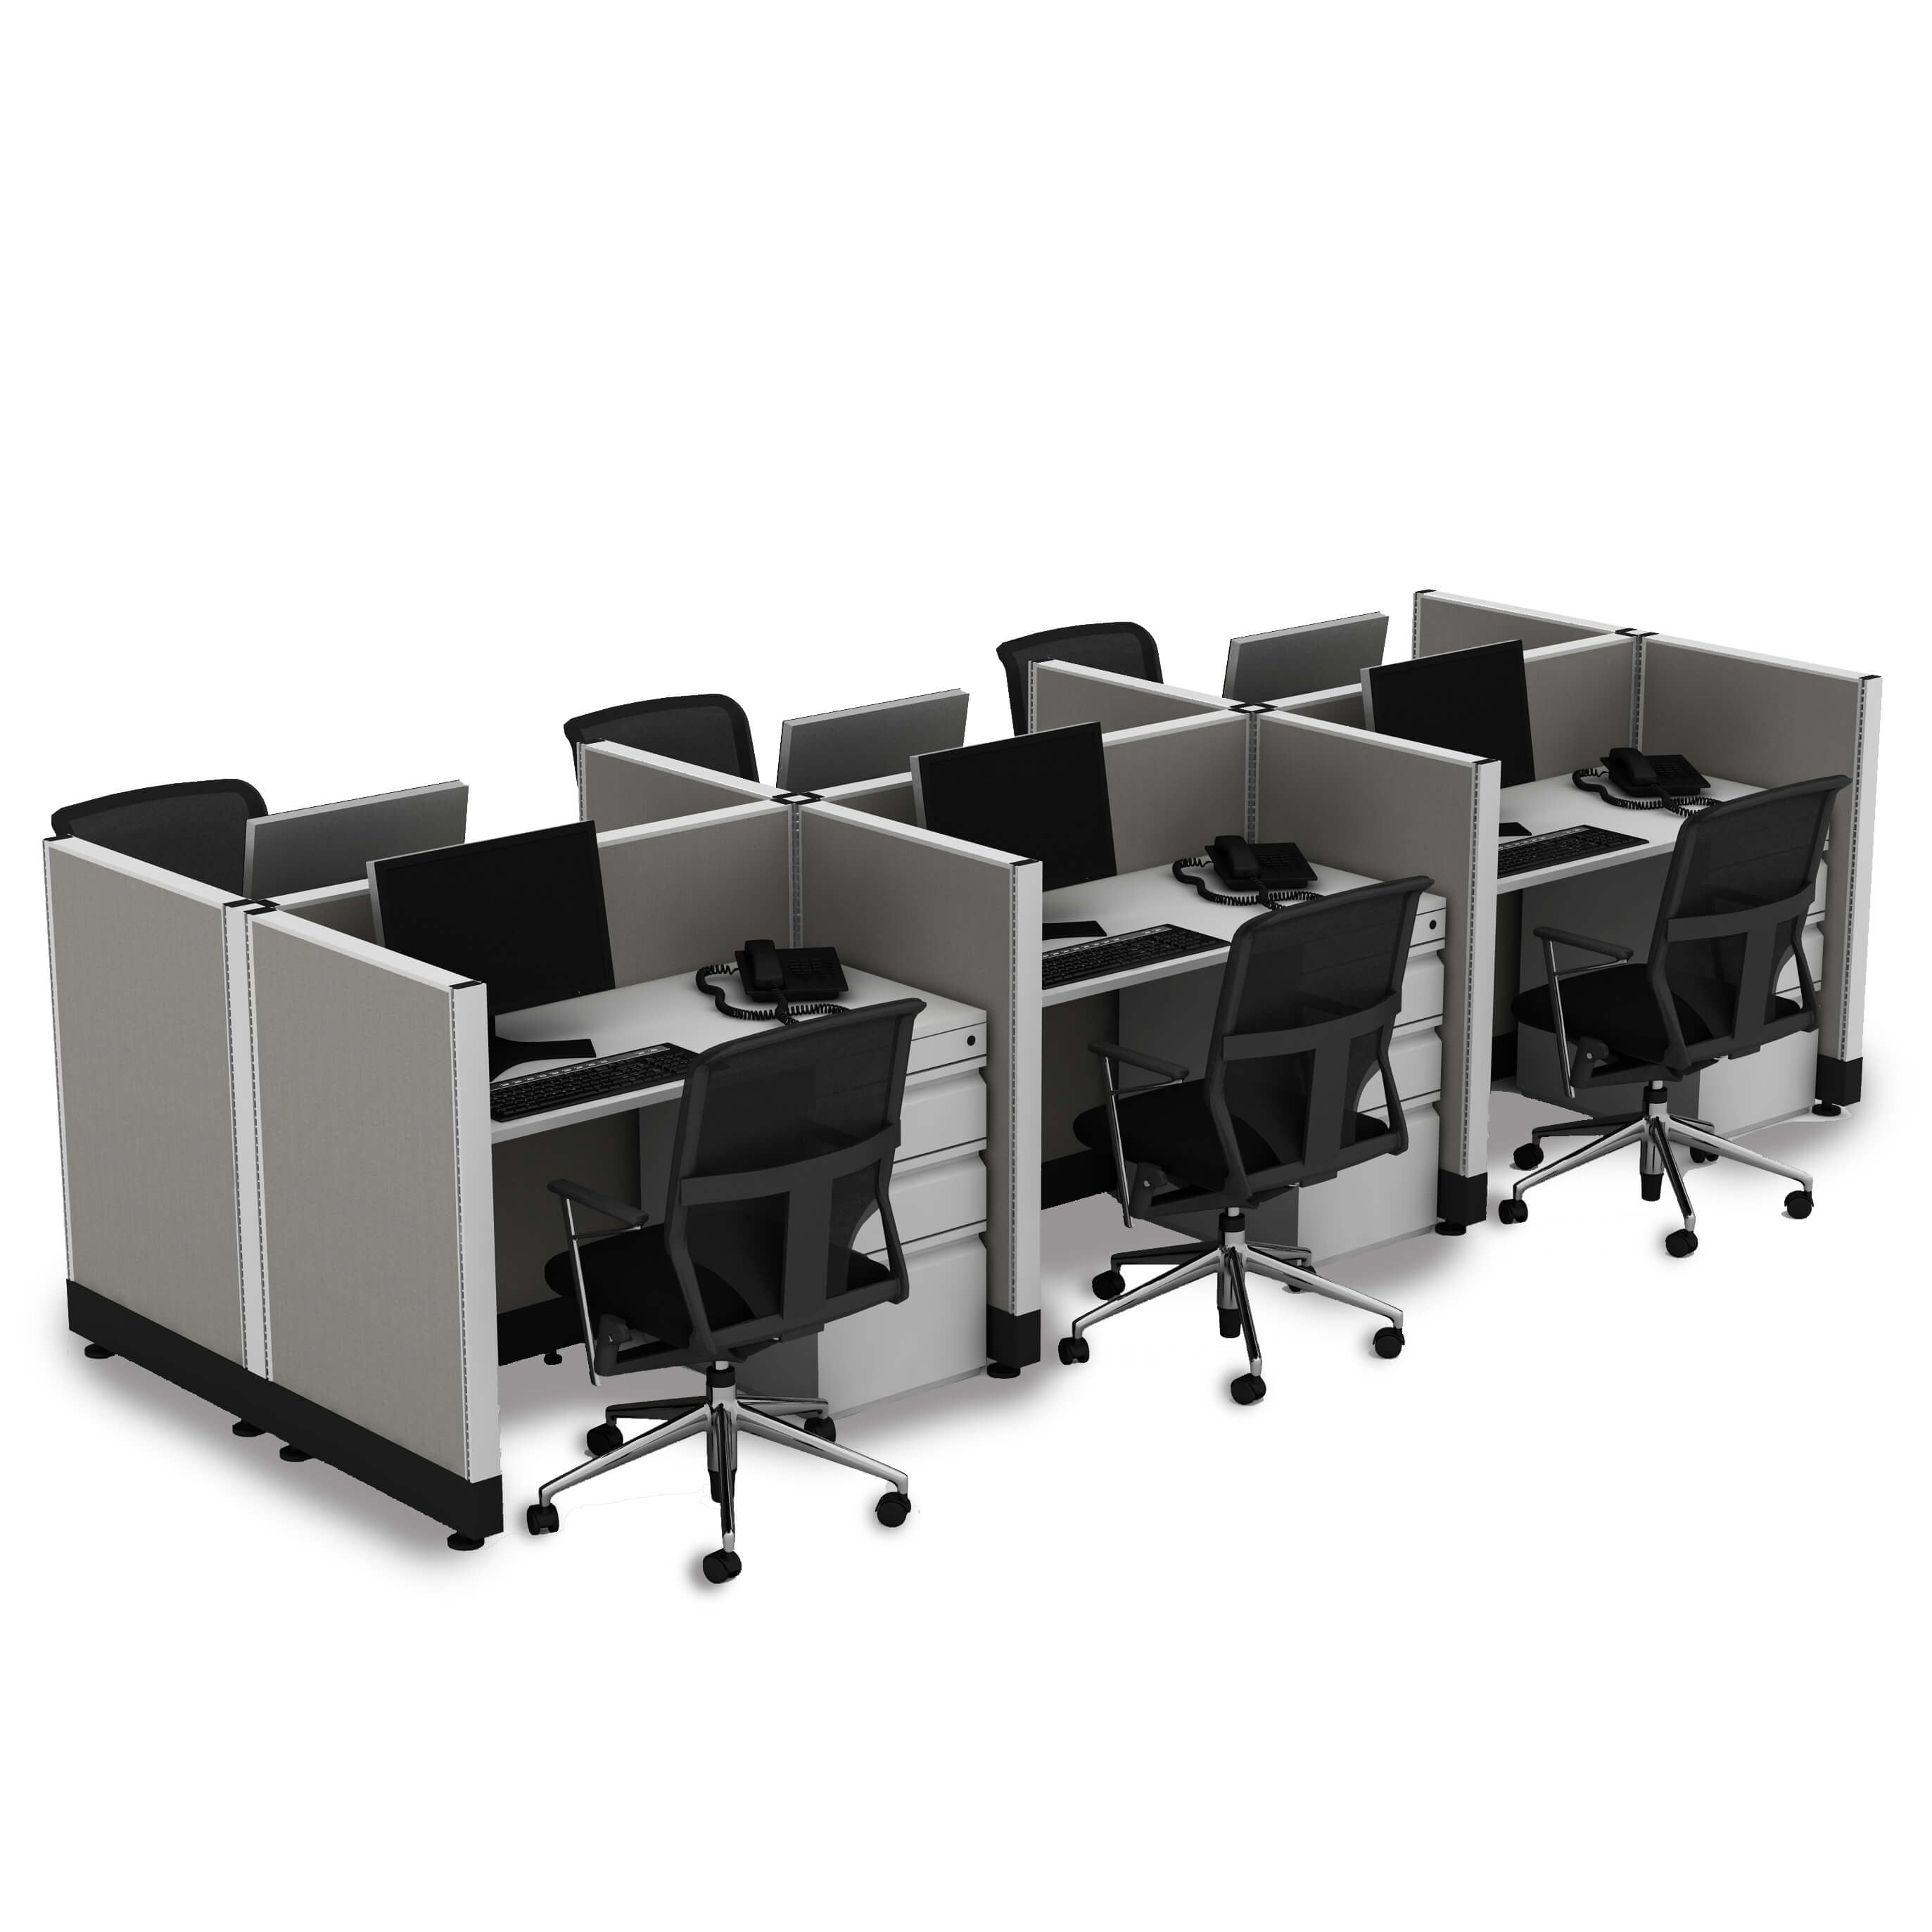 Small Office Cubicles 39H 6pack Cluster Unpowered (2x3 - White Desk White Paint - Assembled)